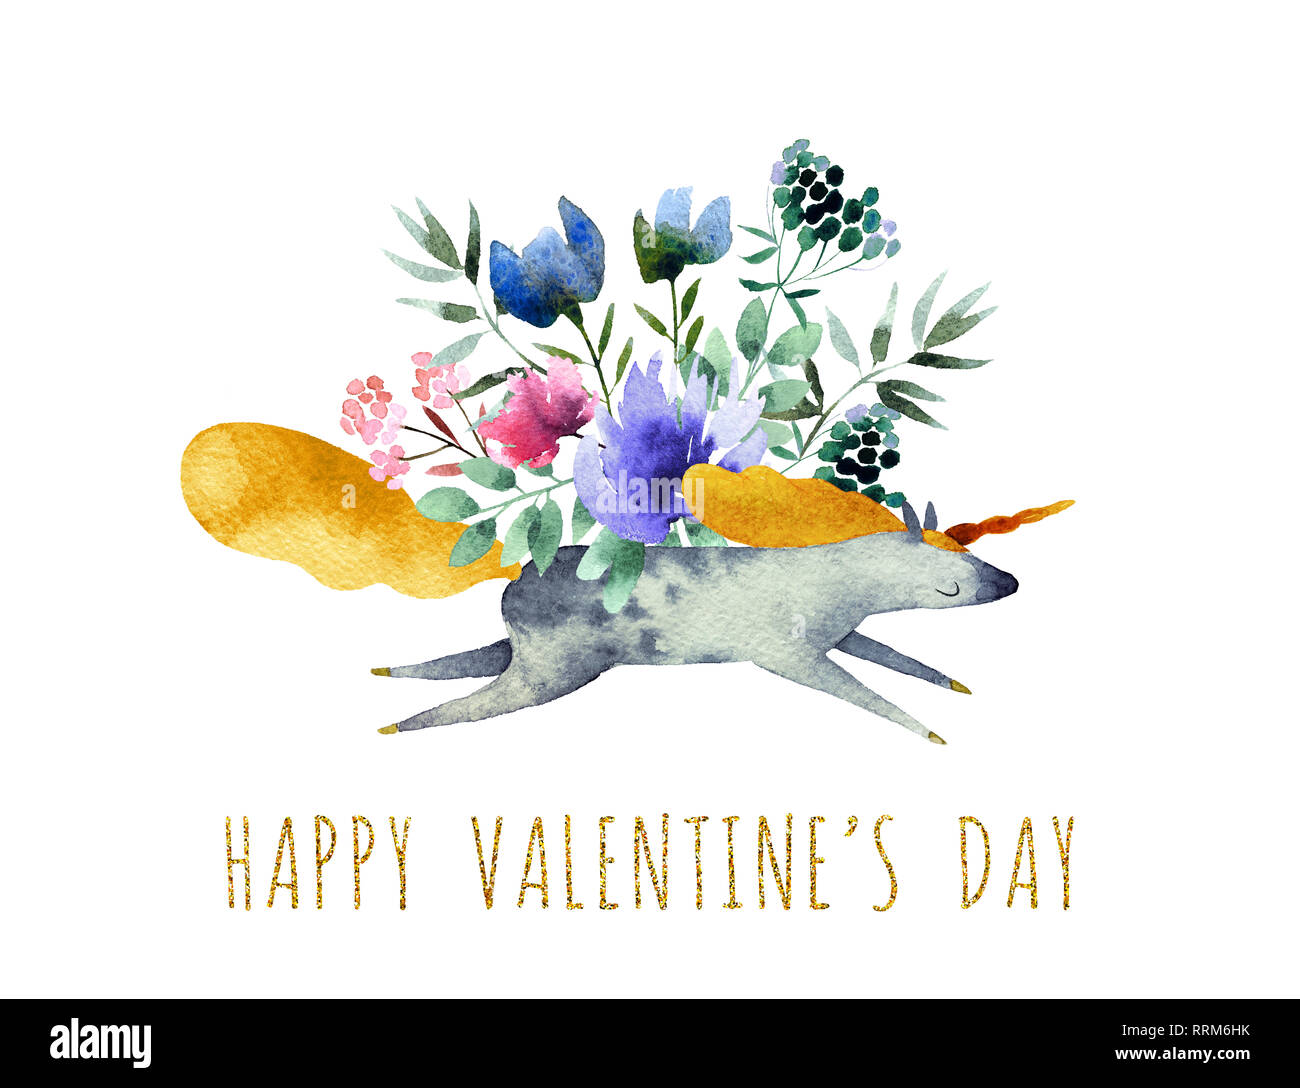 Beautiful watercolor bouquet with watercolor unicorn isolated on white background. Happy Valentine's Day postcard. Stock Photo